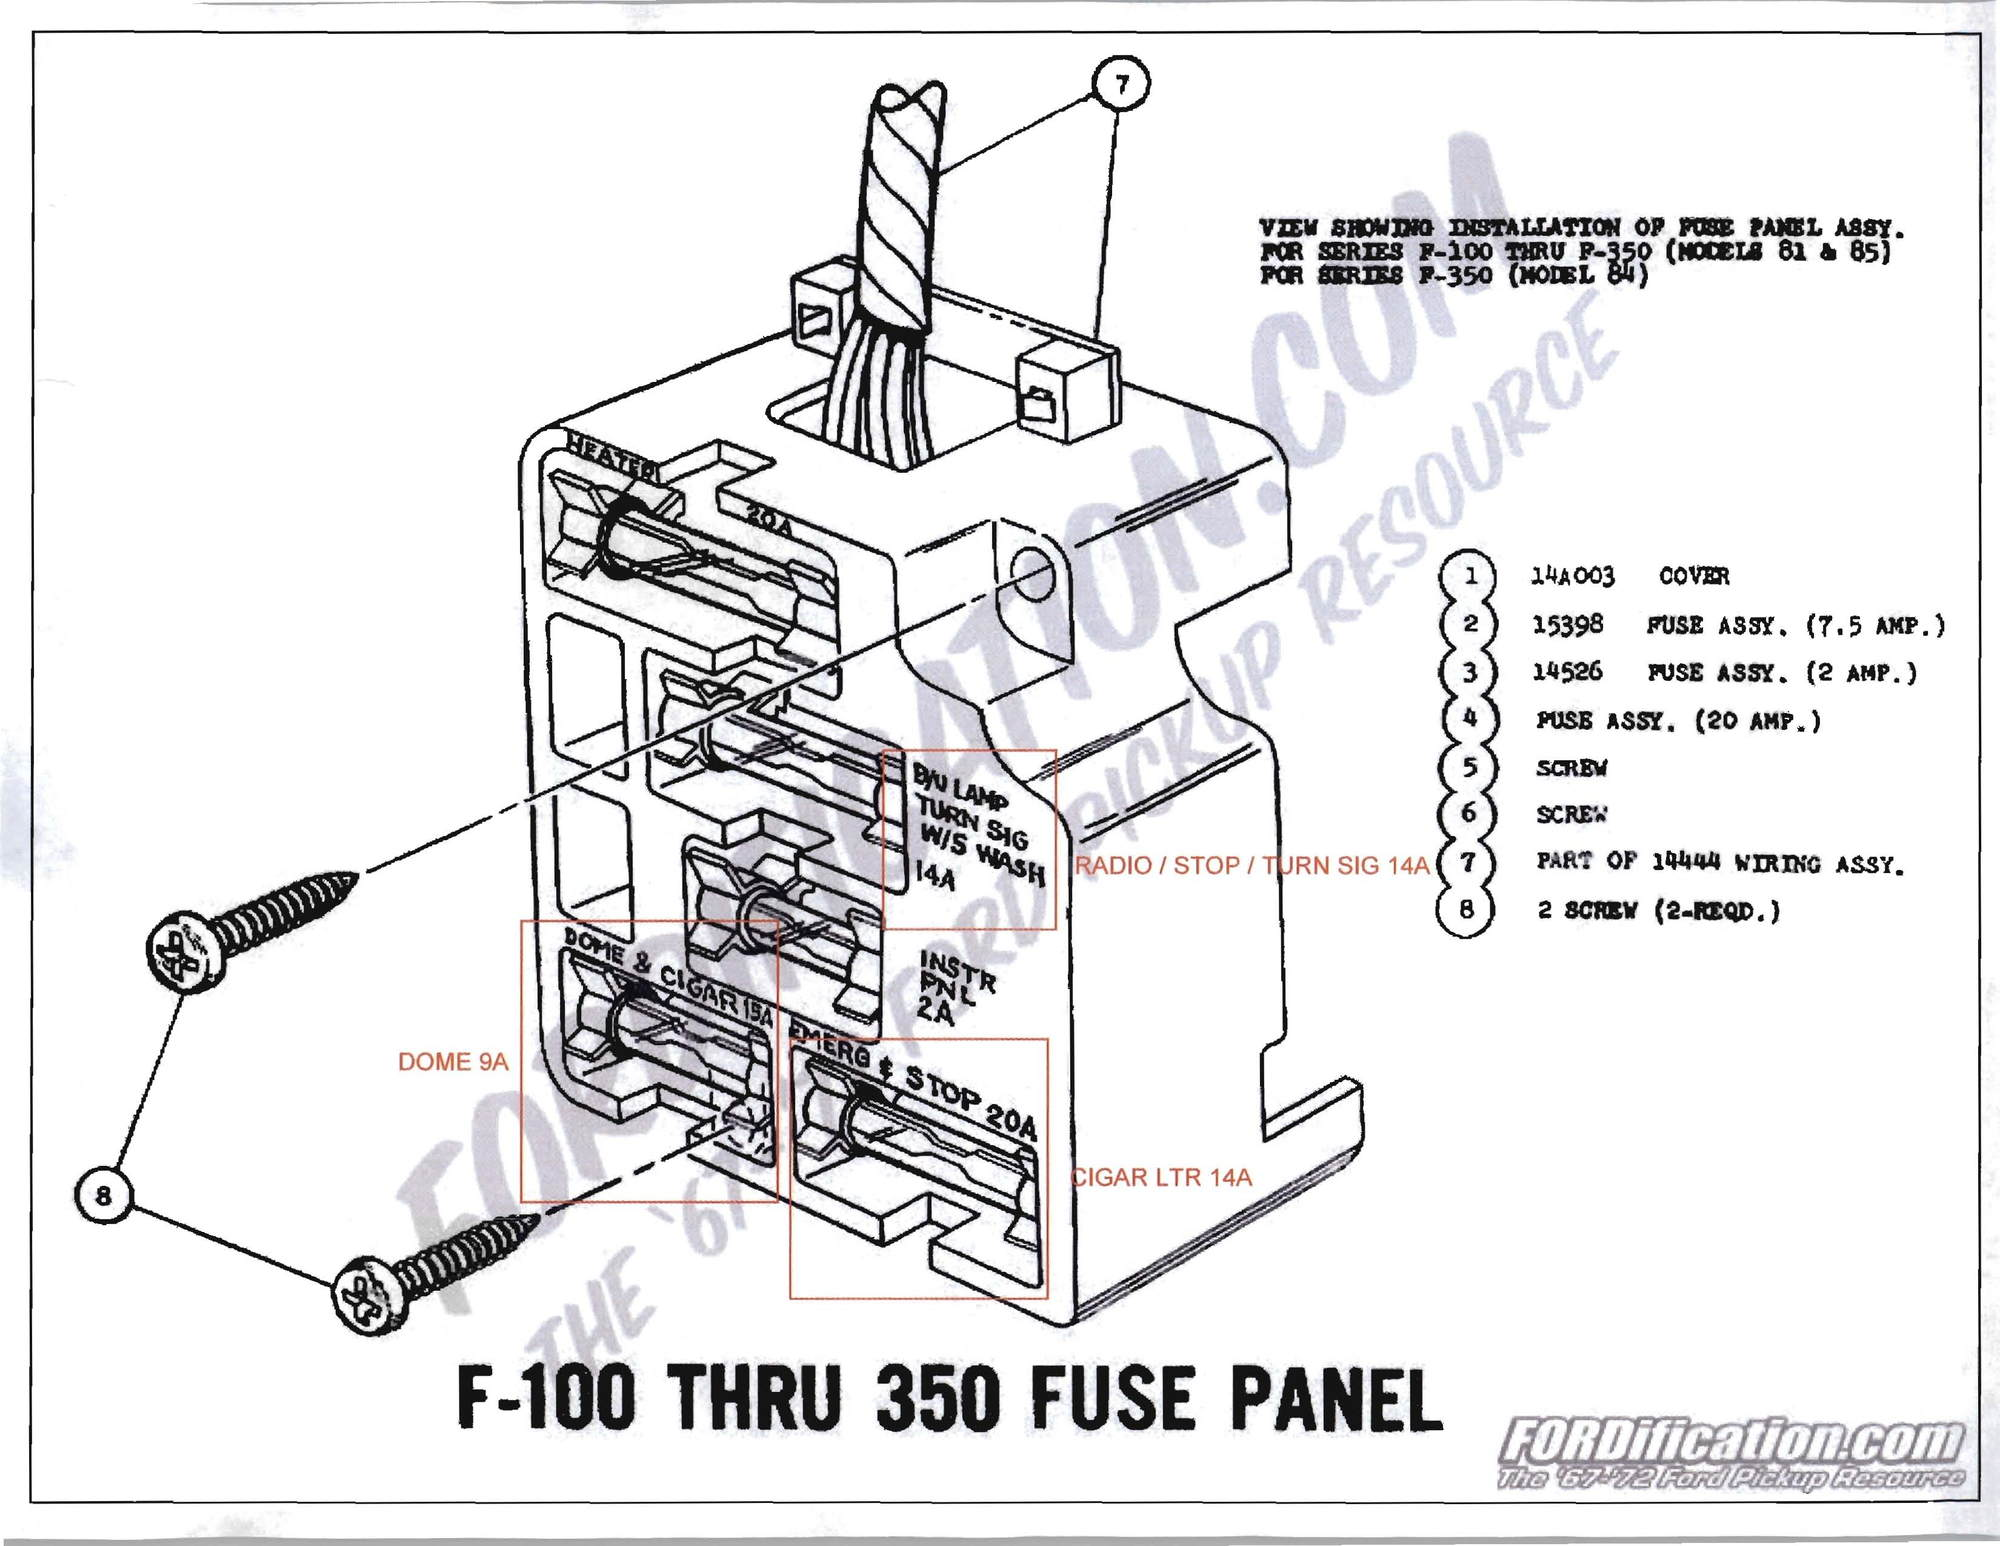 Fuse Panel Question